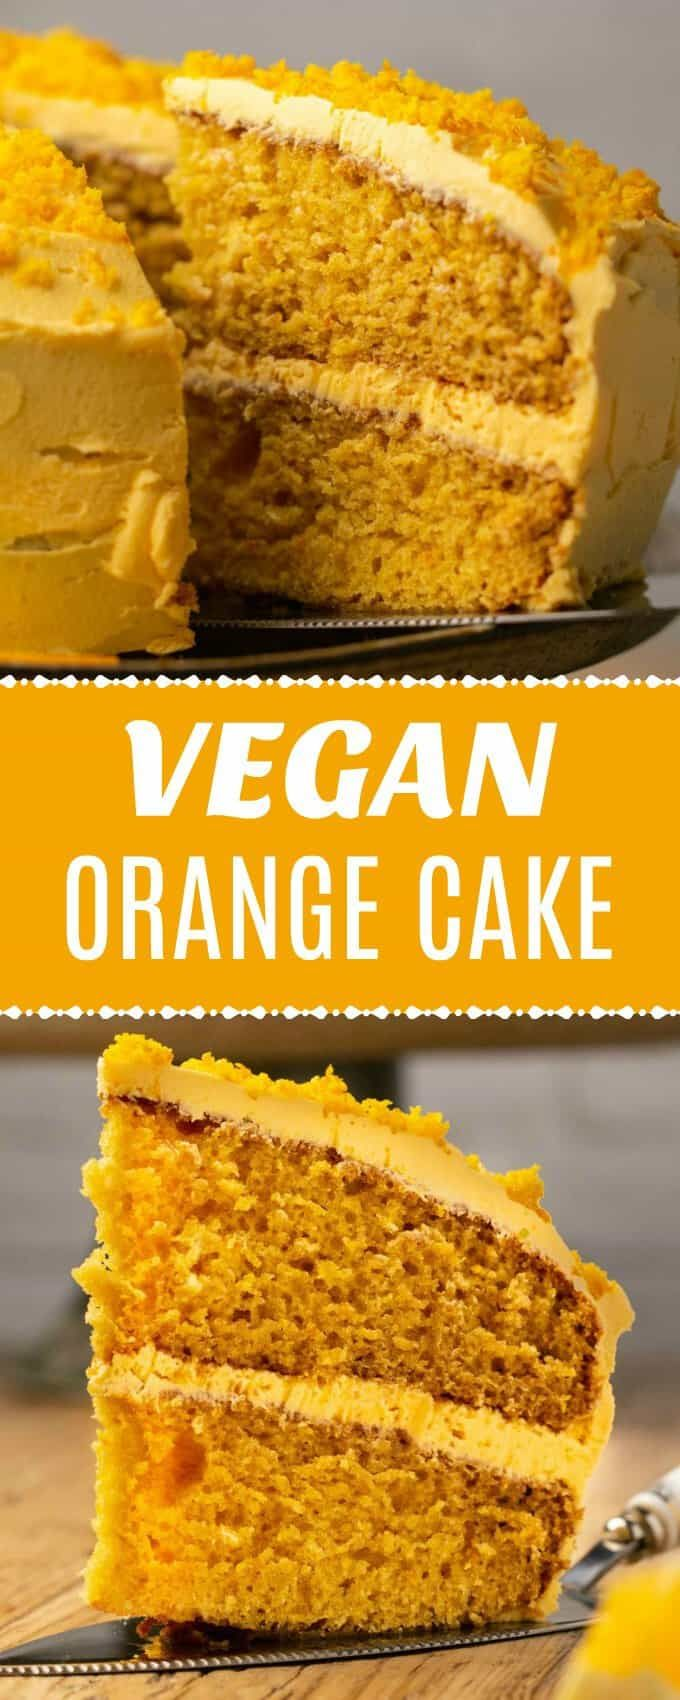 The Best Vegan Orange Cake With Heaps Of Orange Flavor And A Gorgeous Color Light And Fluffy An Orange Cake Recipe Vegan Orange Cake Recipe Vegan Cake Recipes